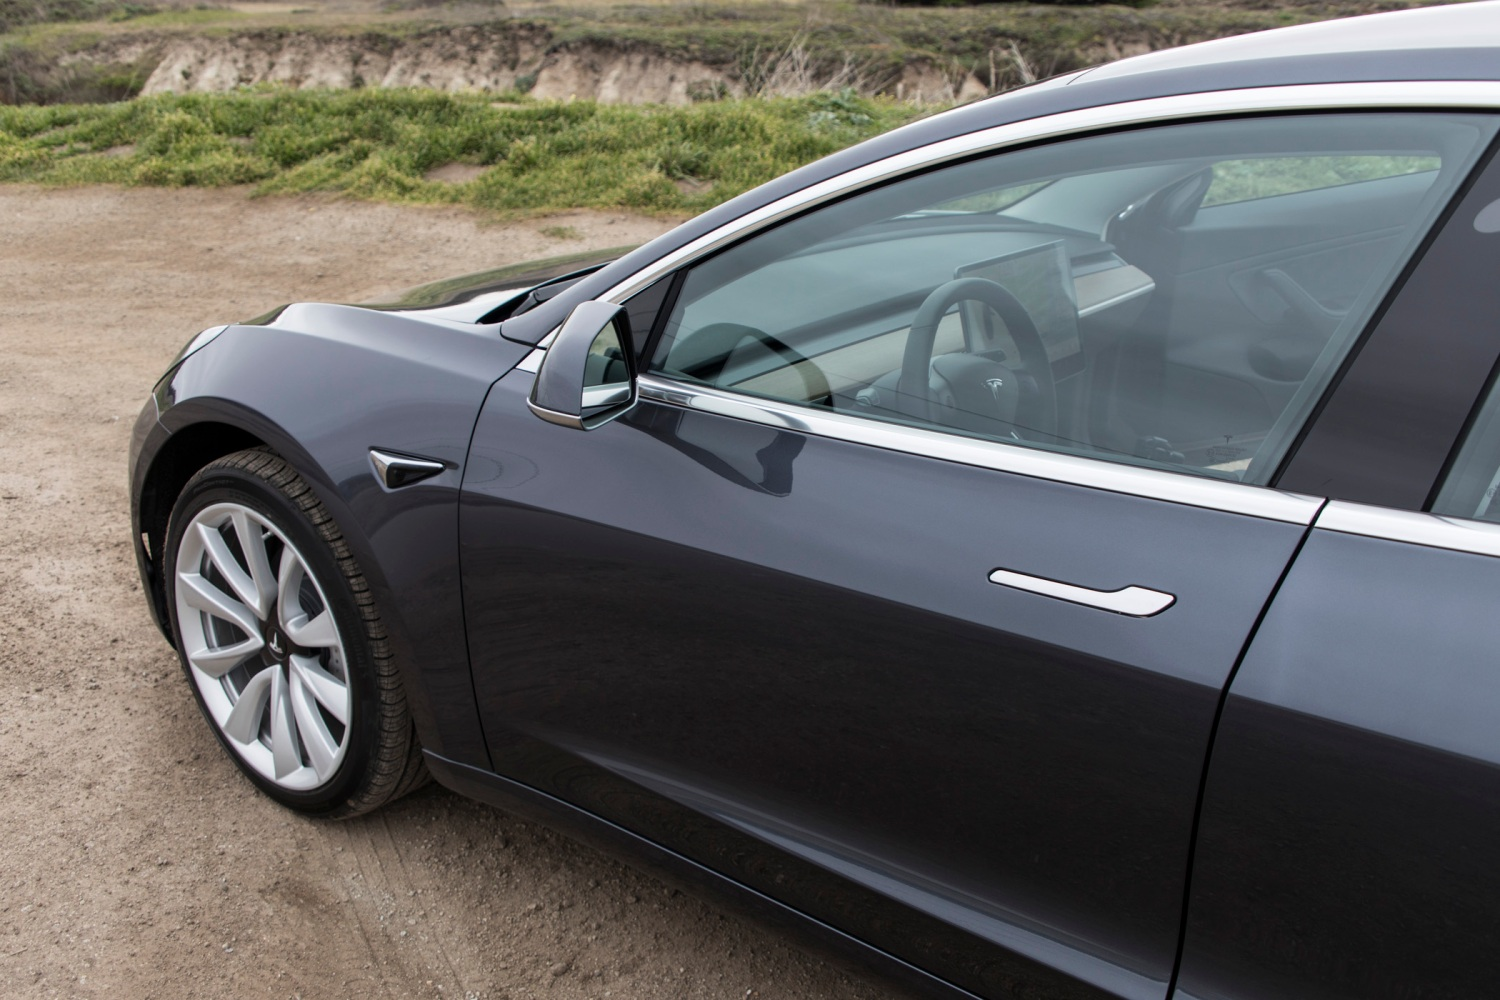 The Tesla Model 3 is a love letter to the road | TechCrunch